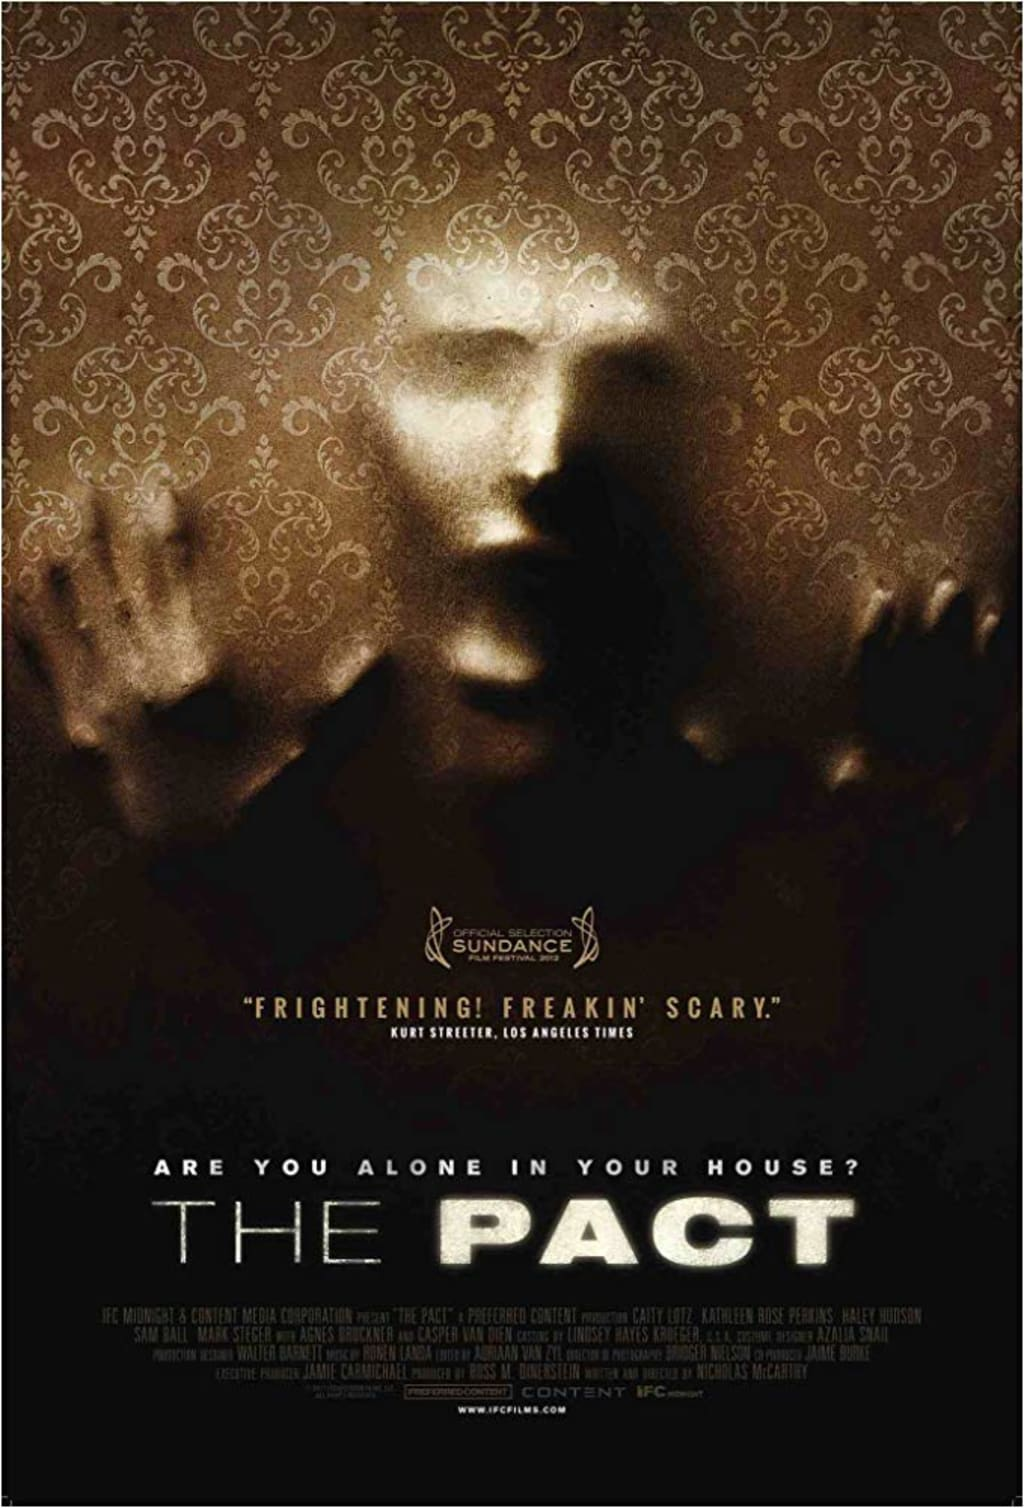 Reed Alexander's Horror Review of 'The Pact' (2012)